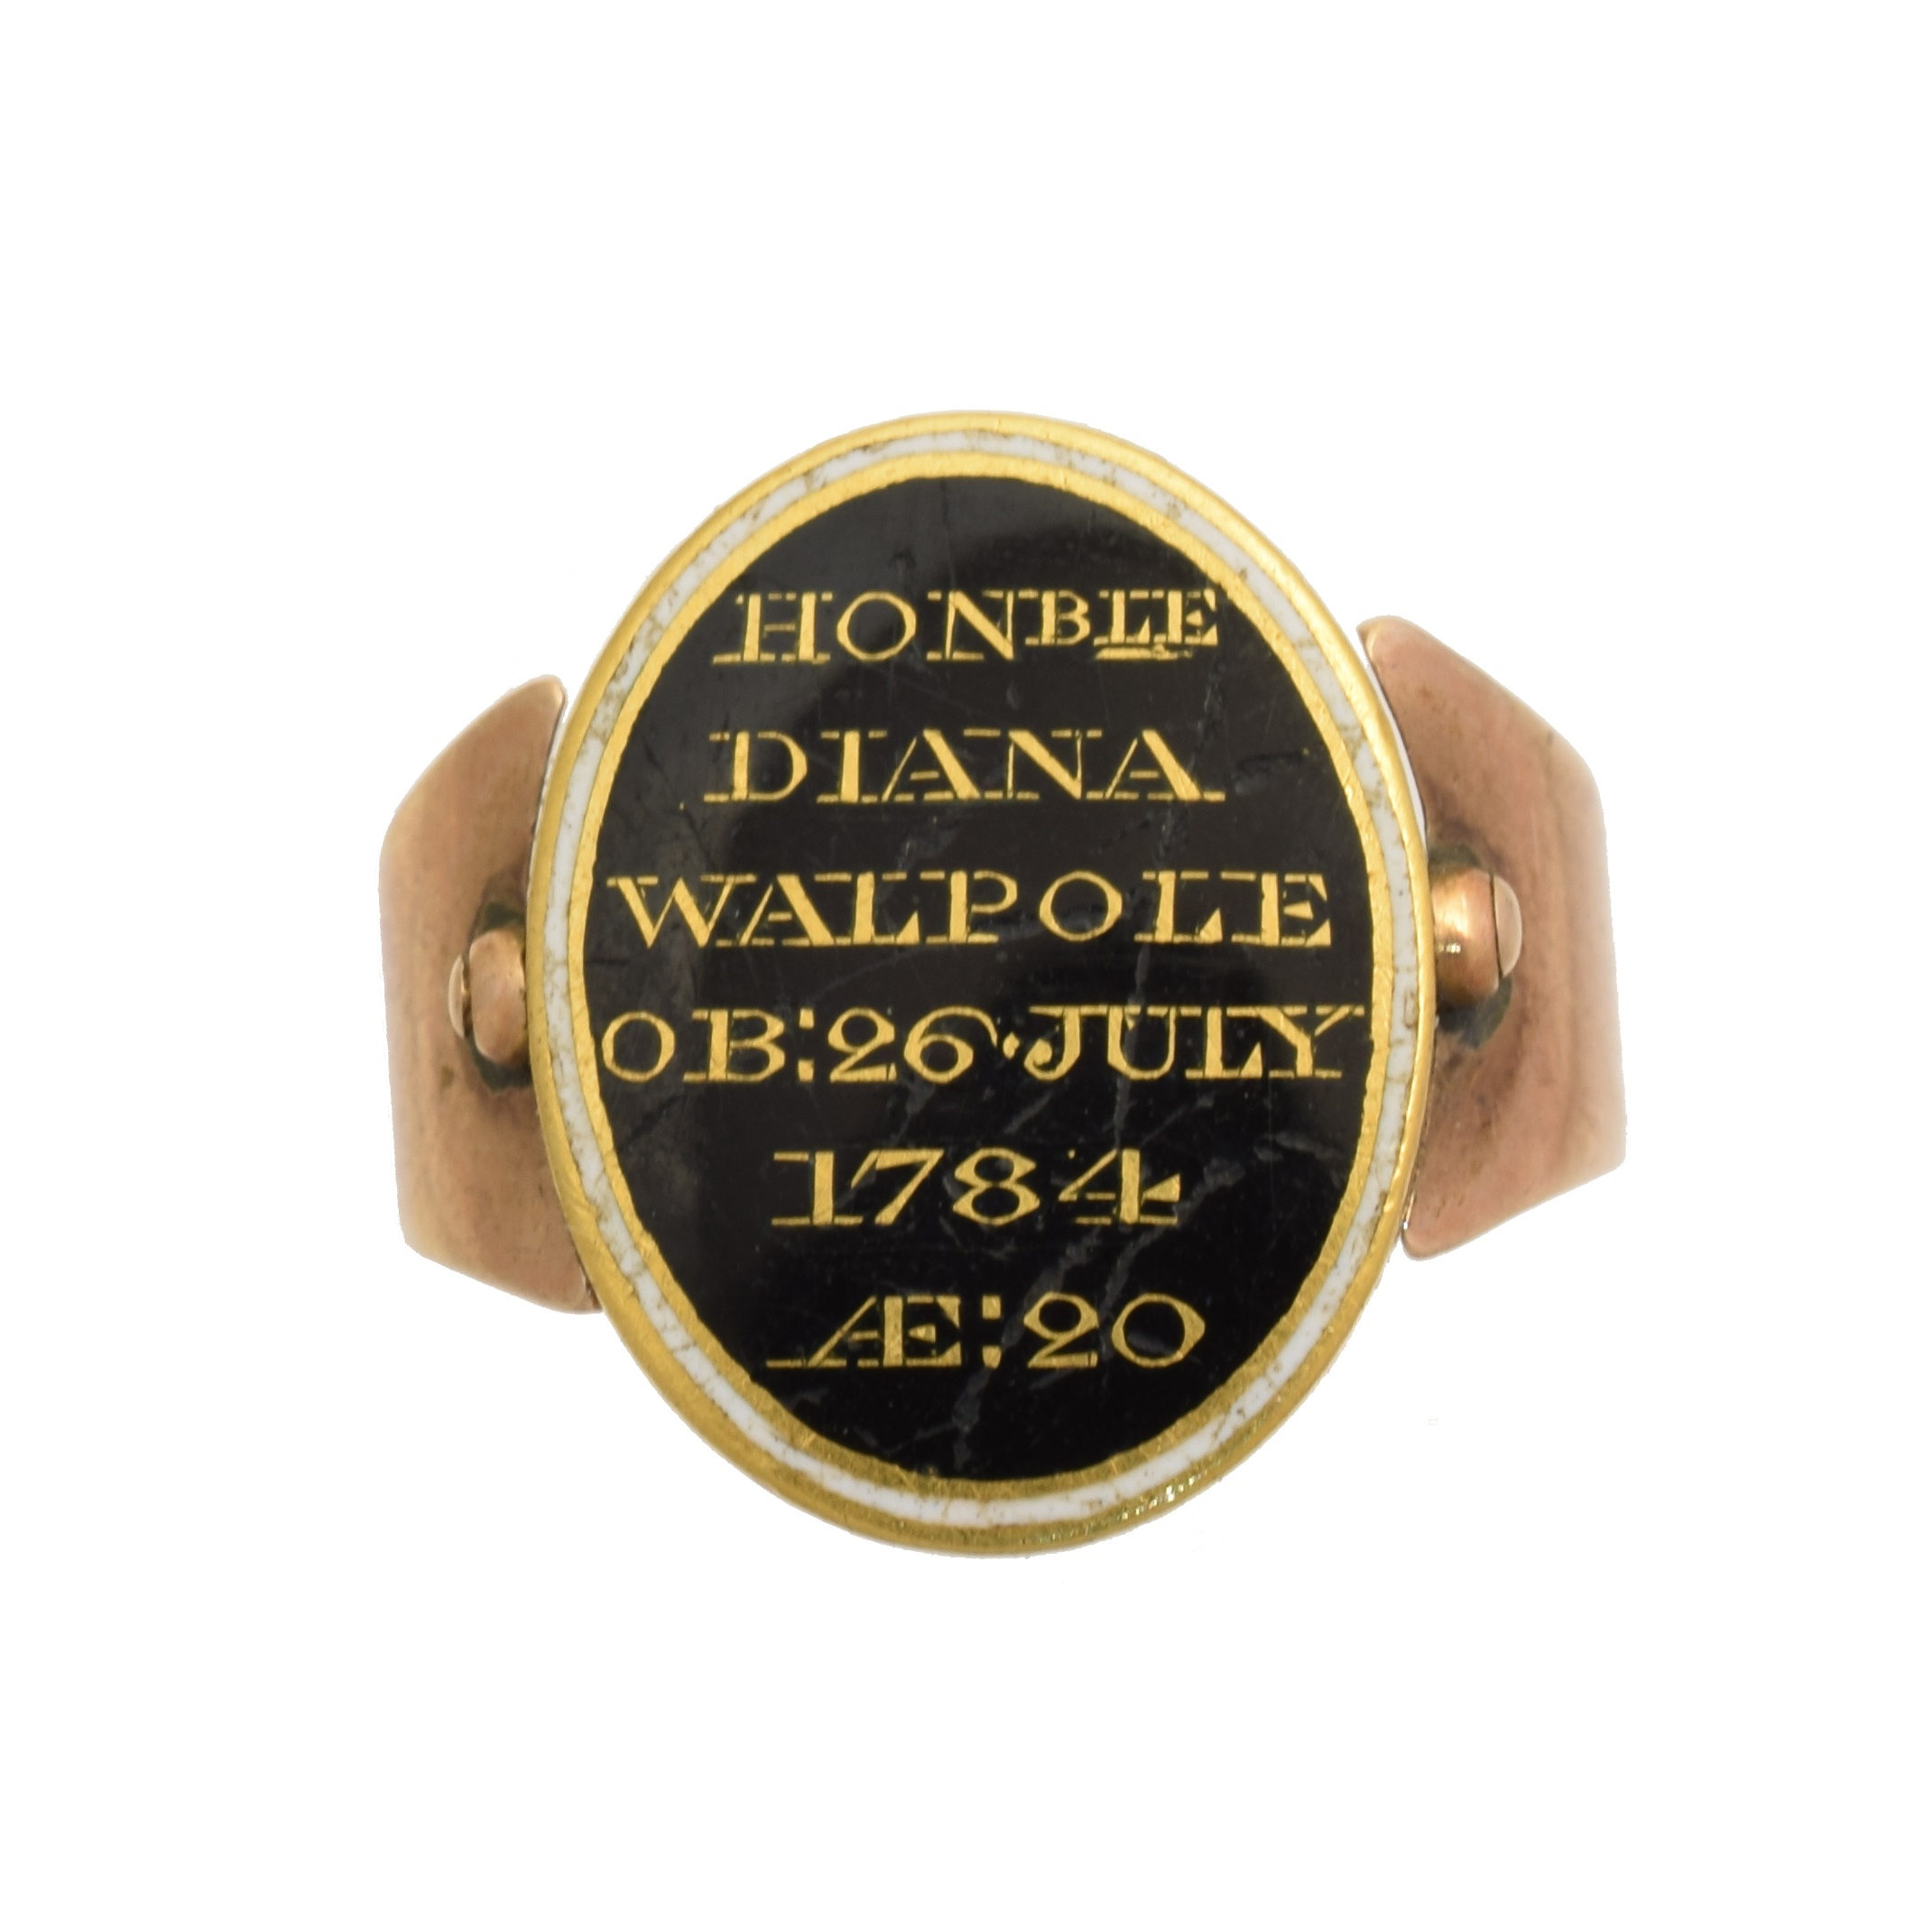 A George III swivel mourning ring, with black and enamel panel inscribed 'Honble Diana Walpole Ob:26 July 1784 Ae: 20' with hair panel to reverse, ring size H, gross weight 5.1g.     The Hon. Mrs. Diana Walpole, neé Grosset, married the Hon. Robert Walpole on 8th May 1780. Robert Walpole (1736 - 1810) was the fourth son of Horatio Walpole, 1st Baron Walpole of Wolterton, and nephew of Robert Walpole, 1st Earl of Orford, who is considered the de facto first Prime Minister of Great Britain.